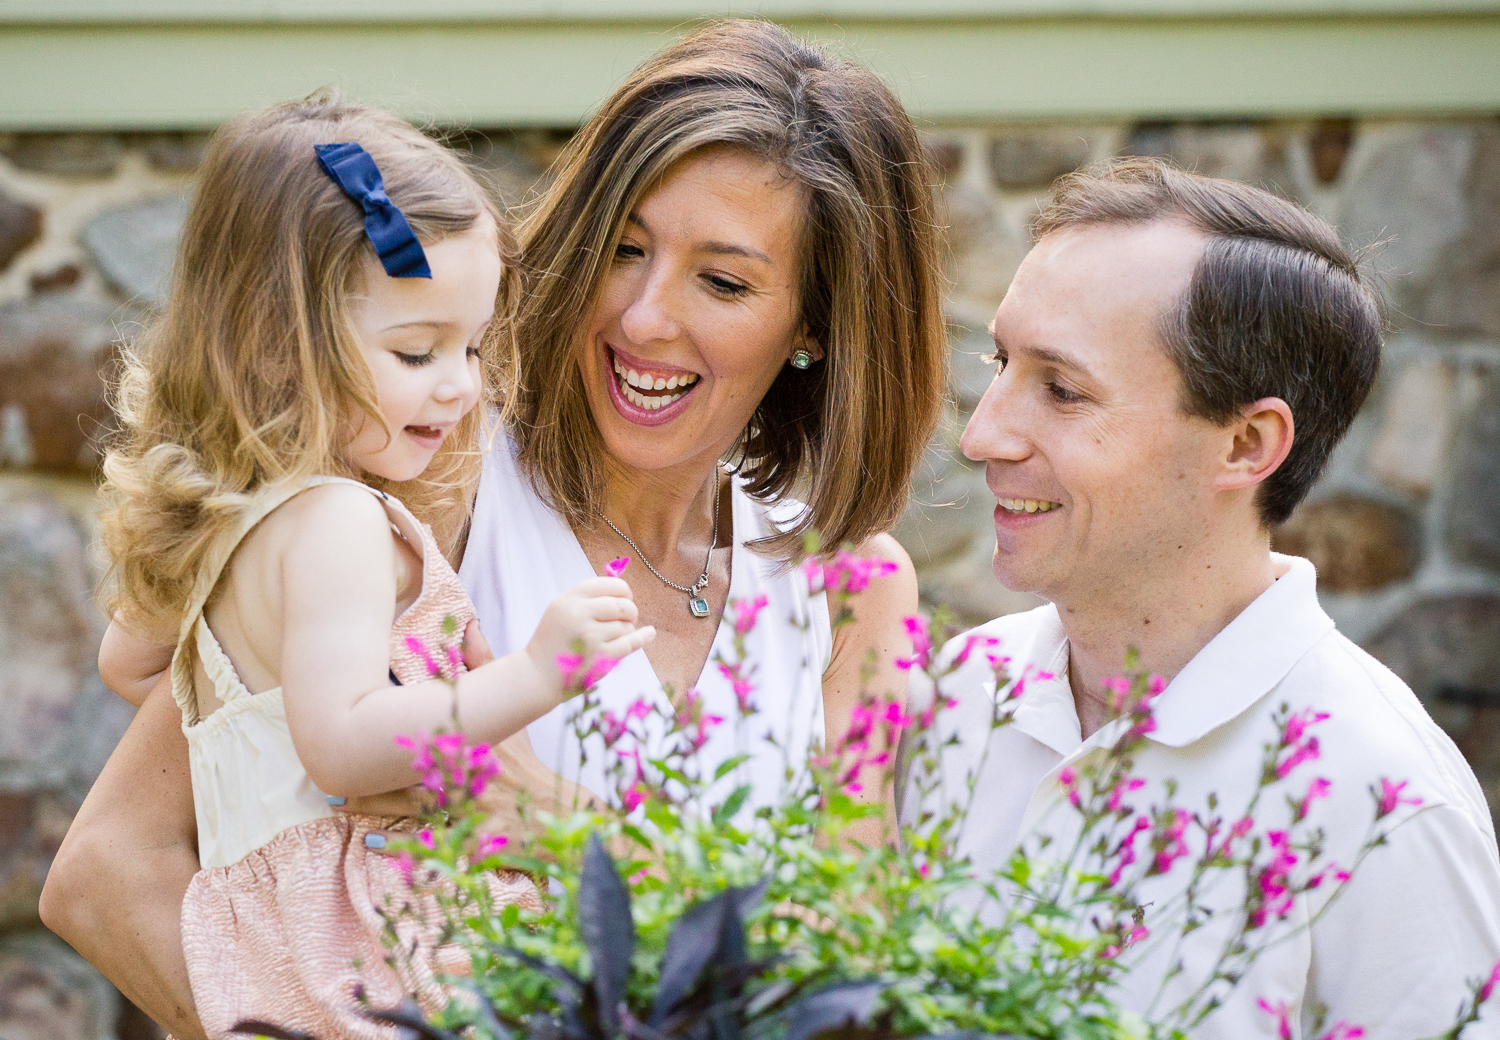 Photography by Aliza at Appleford Estate of parents with their little girl exploring the flowers